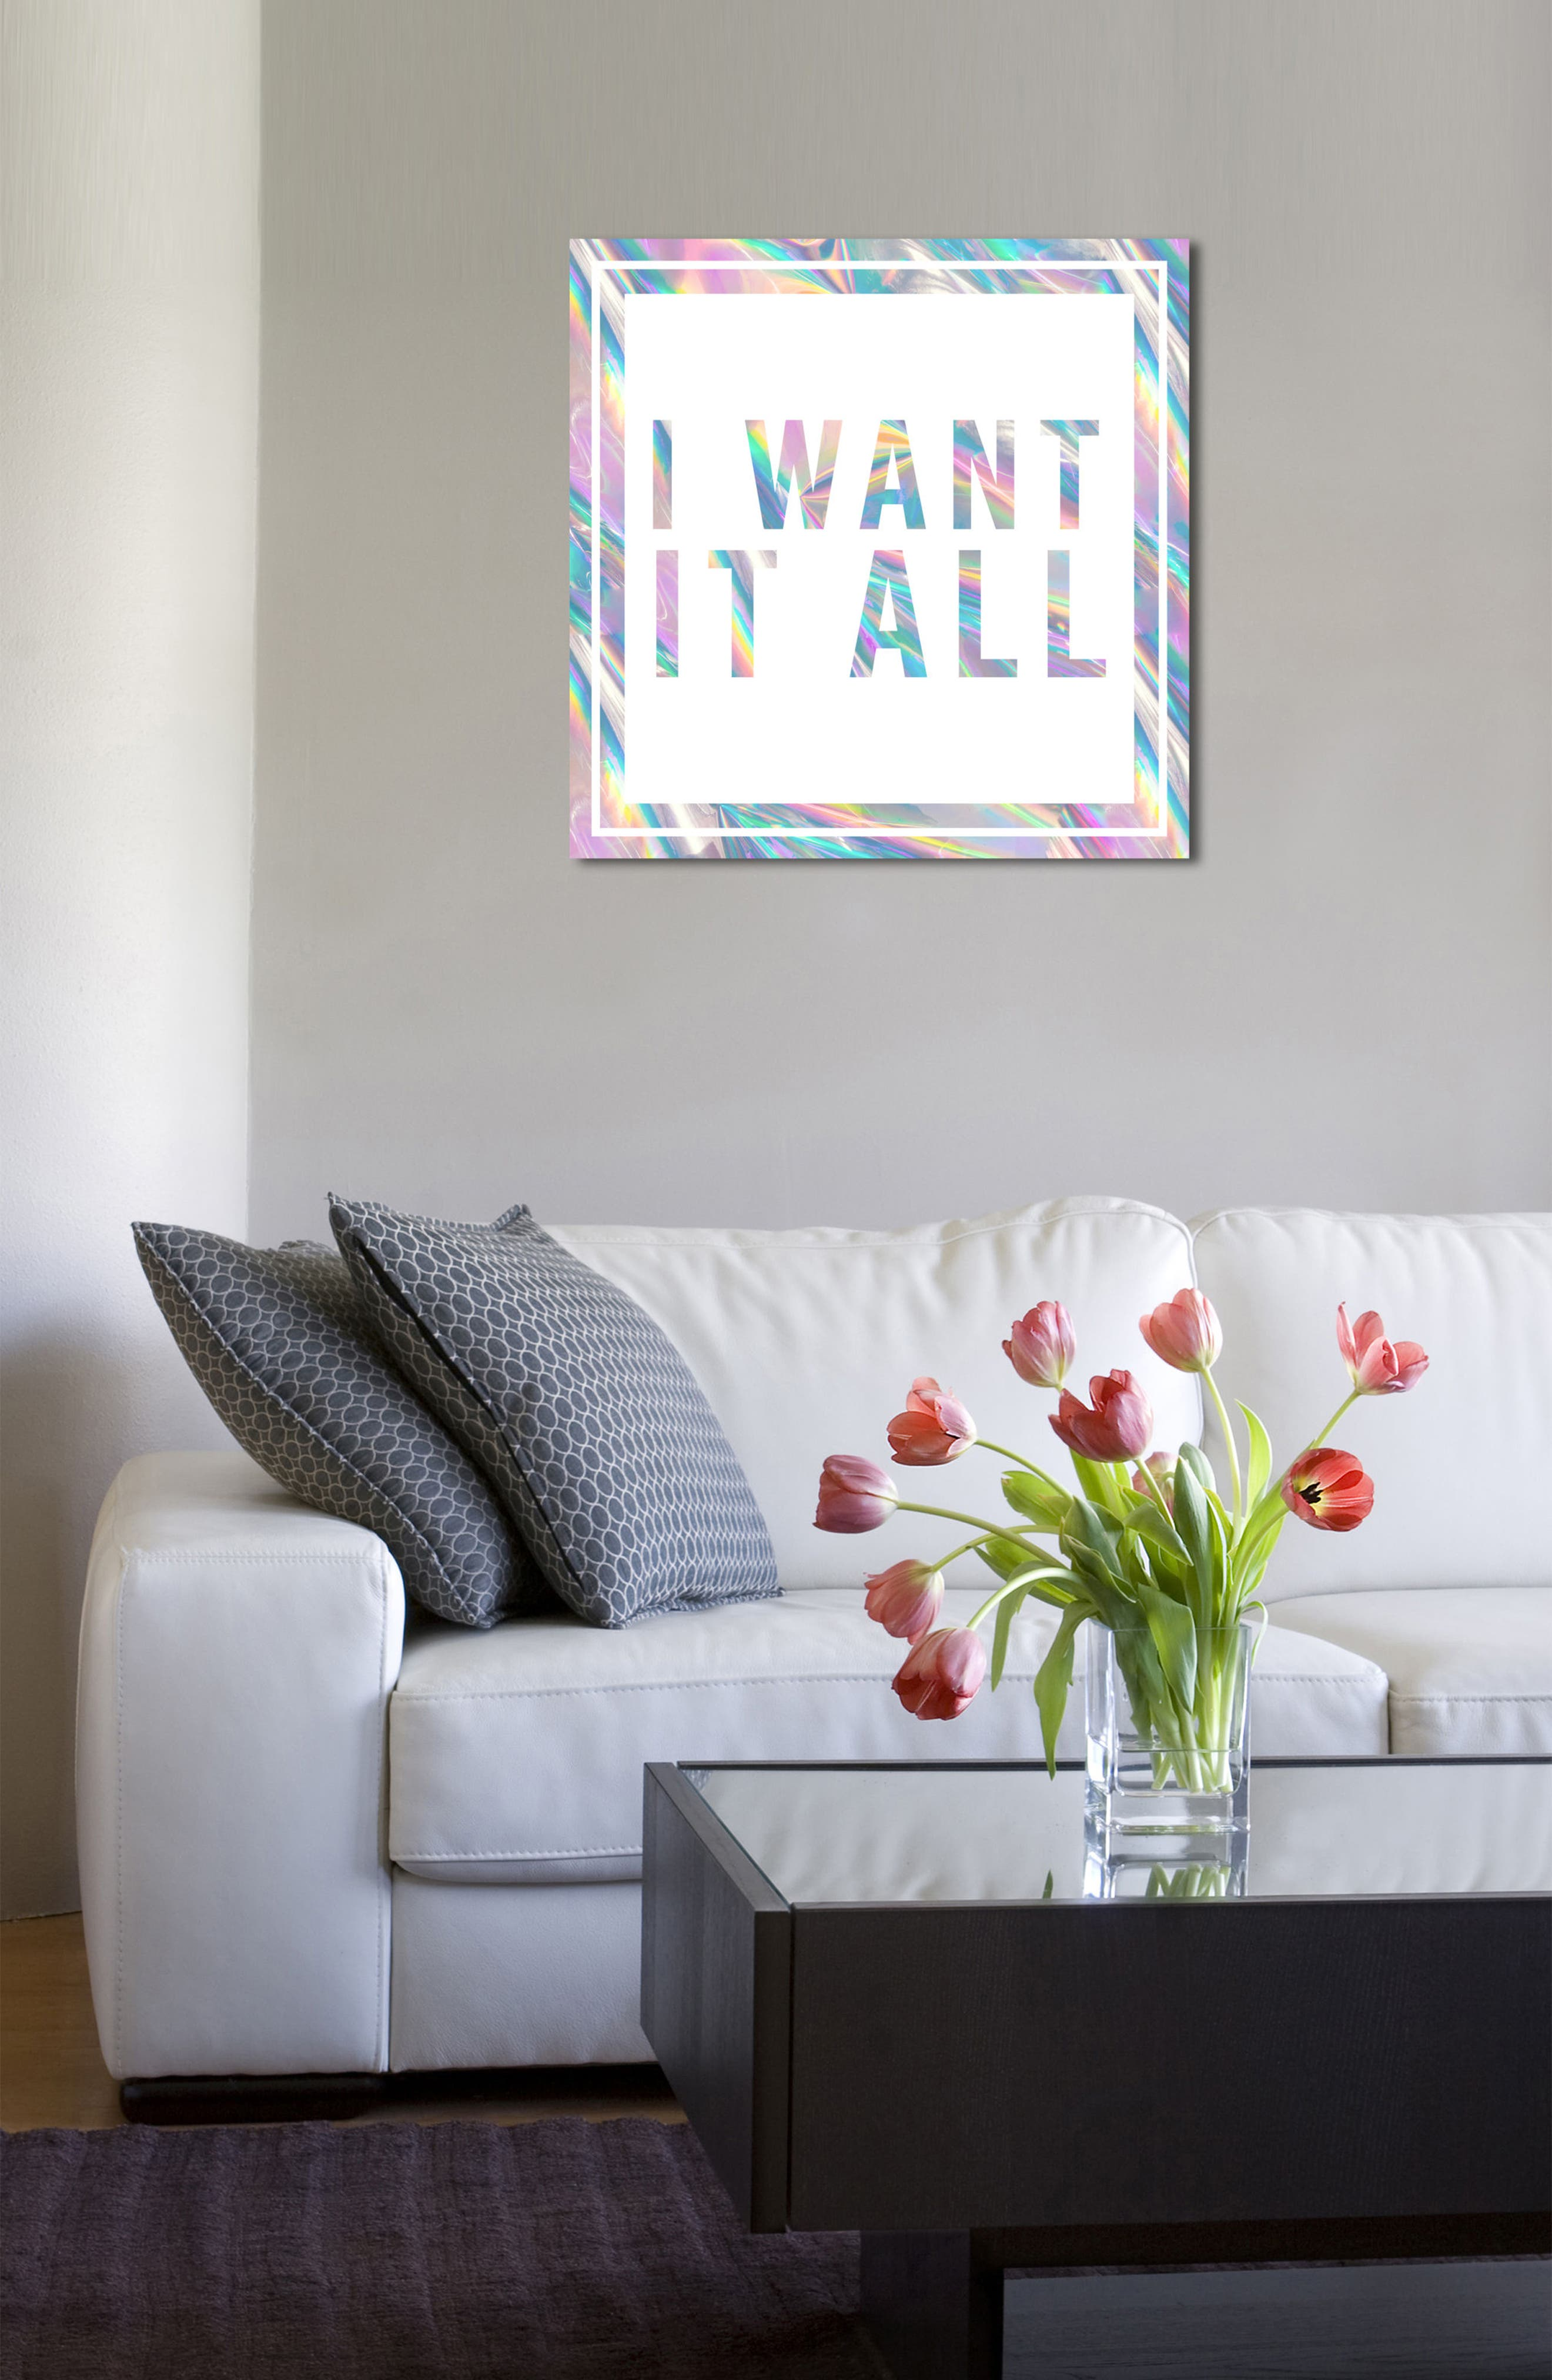 I Want It All Canvas Wall Art,                             Alternate thumbnail 3, color,                             100